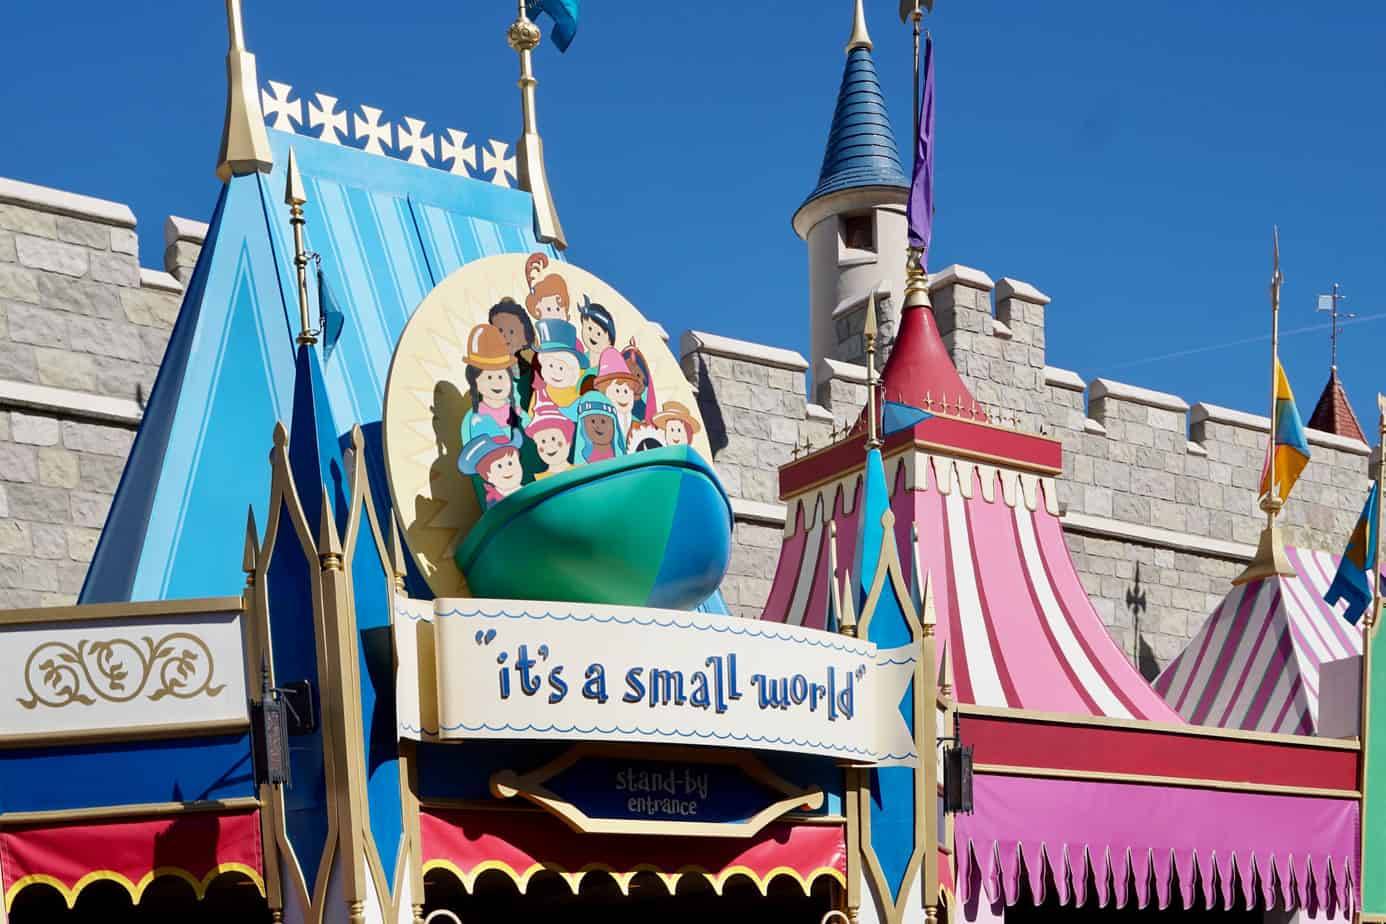 Disney's It's a Small World